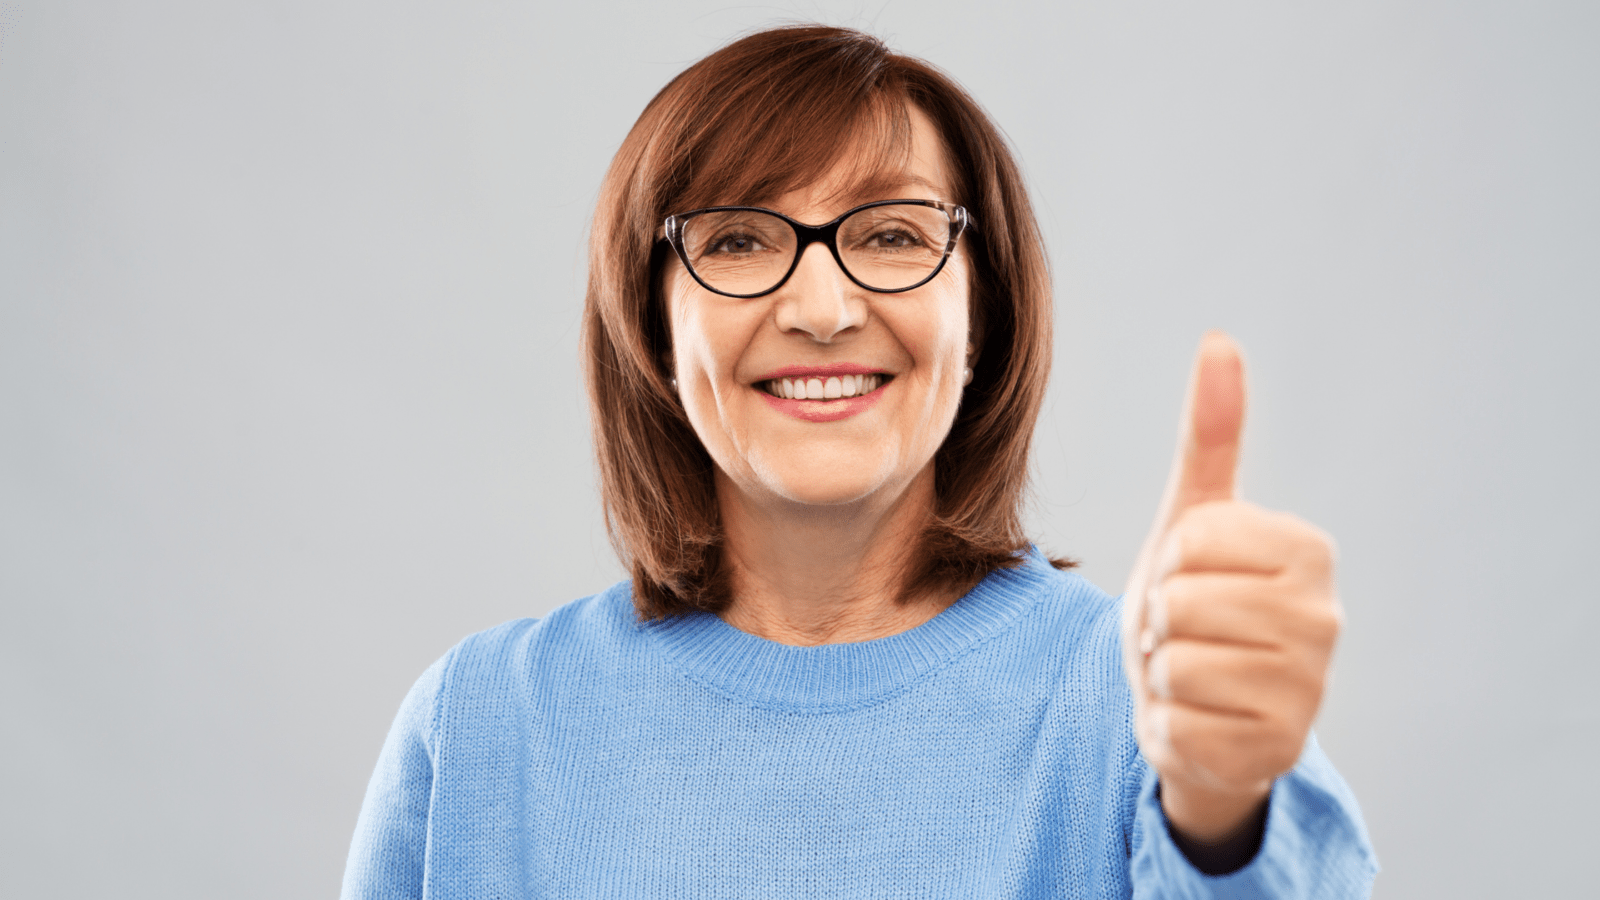 a woman with glasses giving the thumbs up gesture